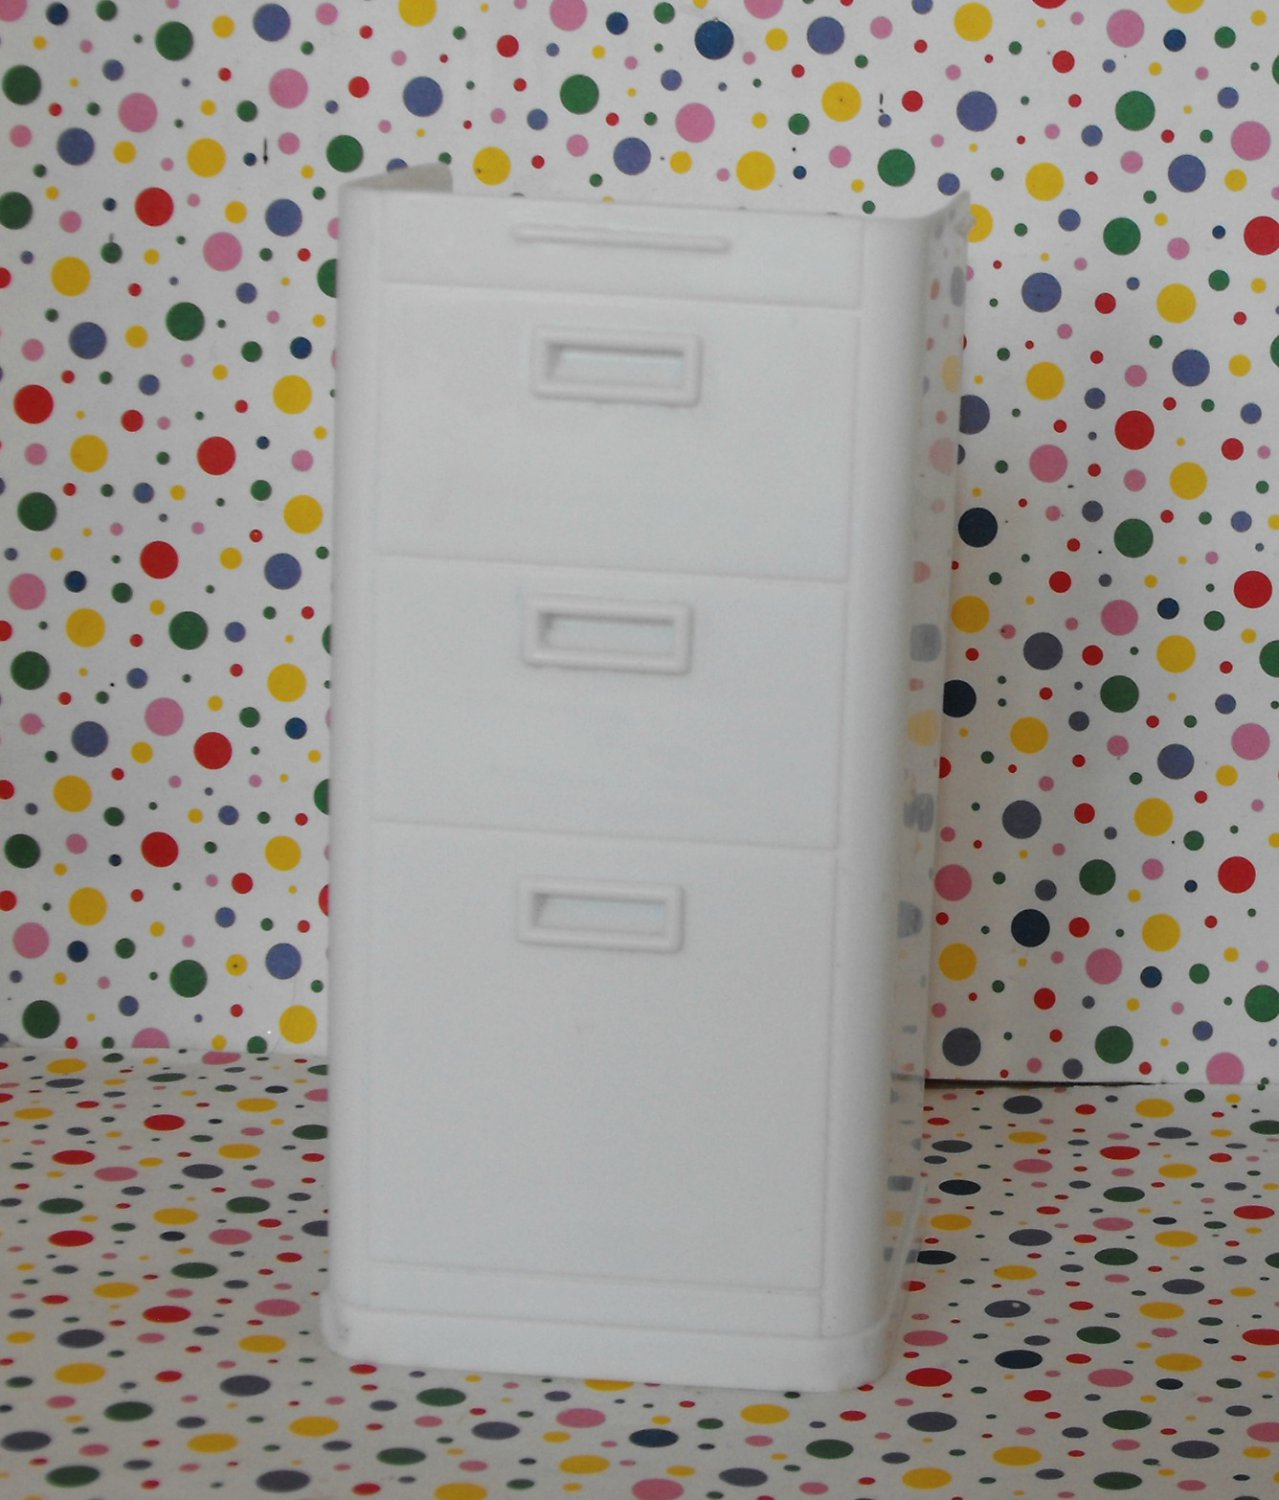 Barbie Love N' Care Nursery Table Drawers Support Part